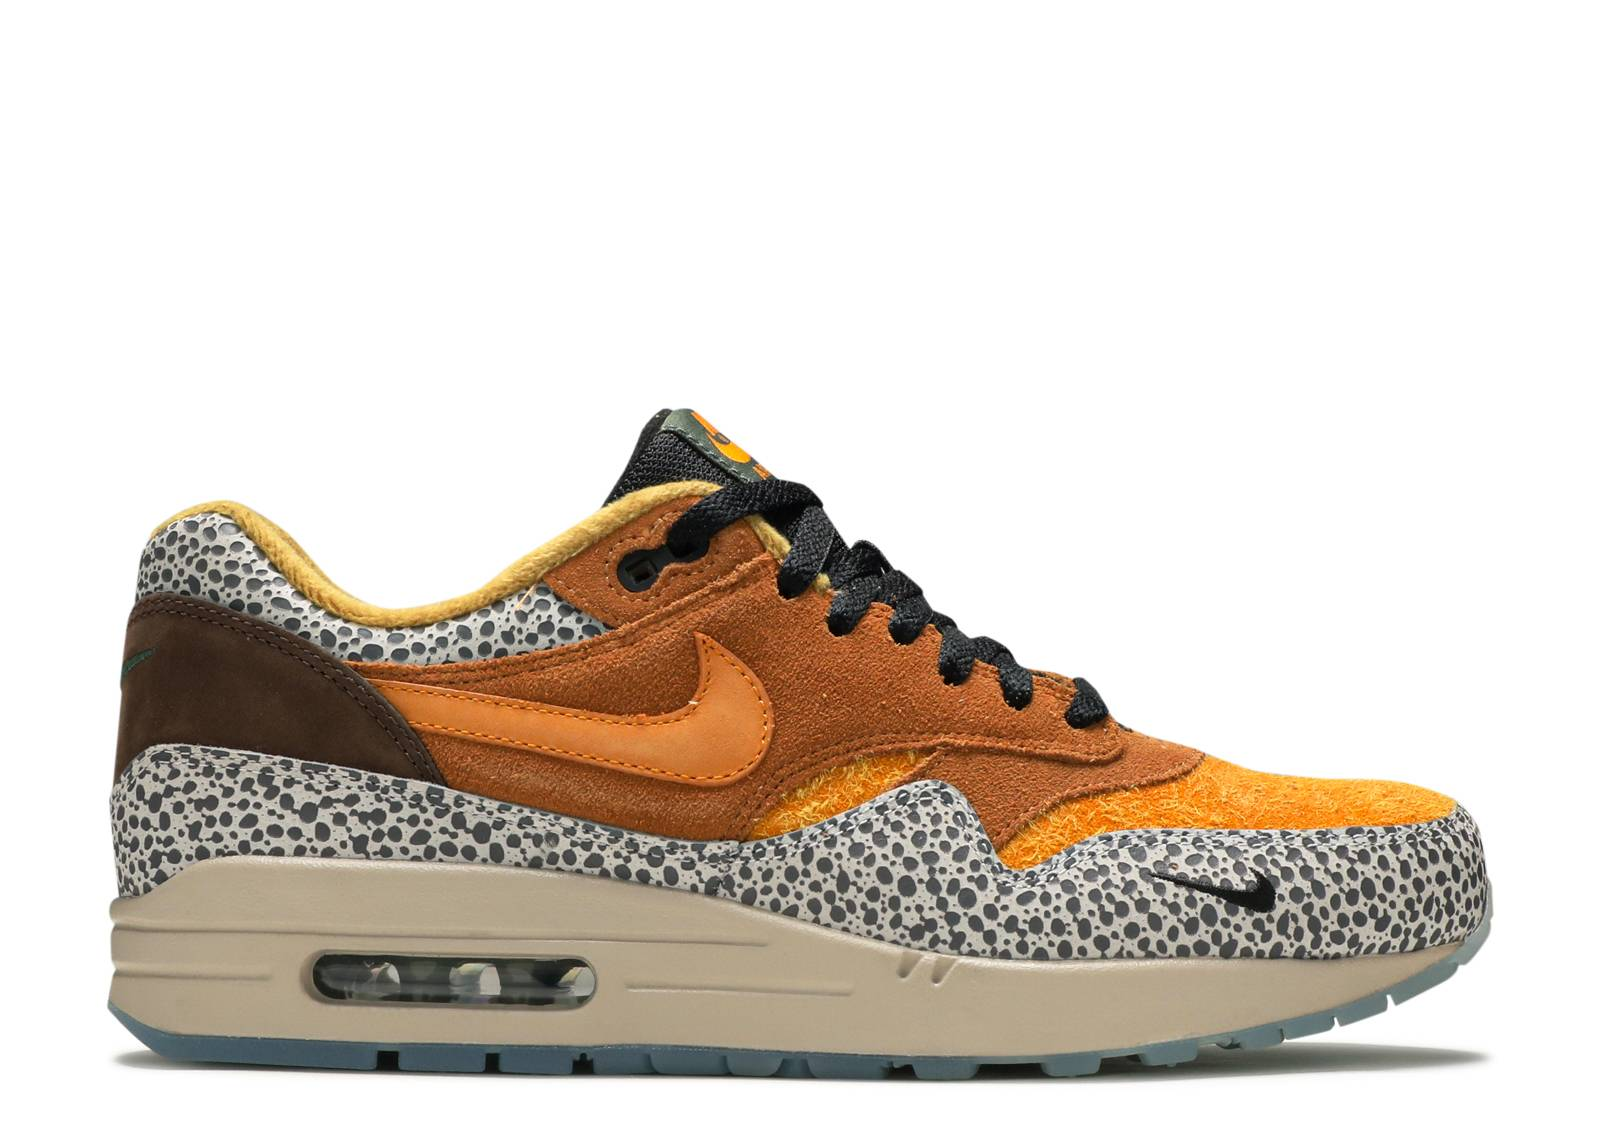 48dd872d9e6 ... uk air max 1 premium qs safari acf90 c200e